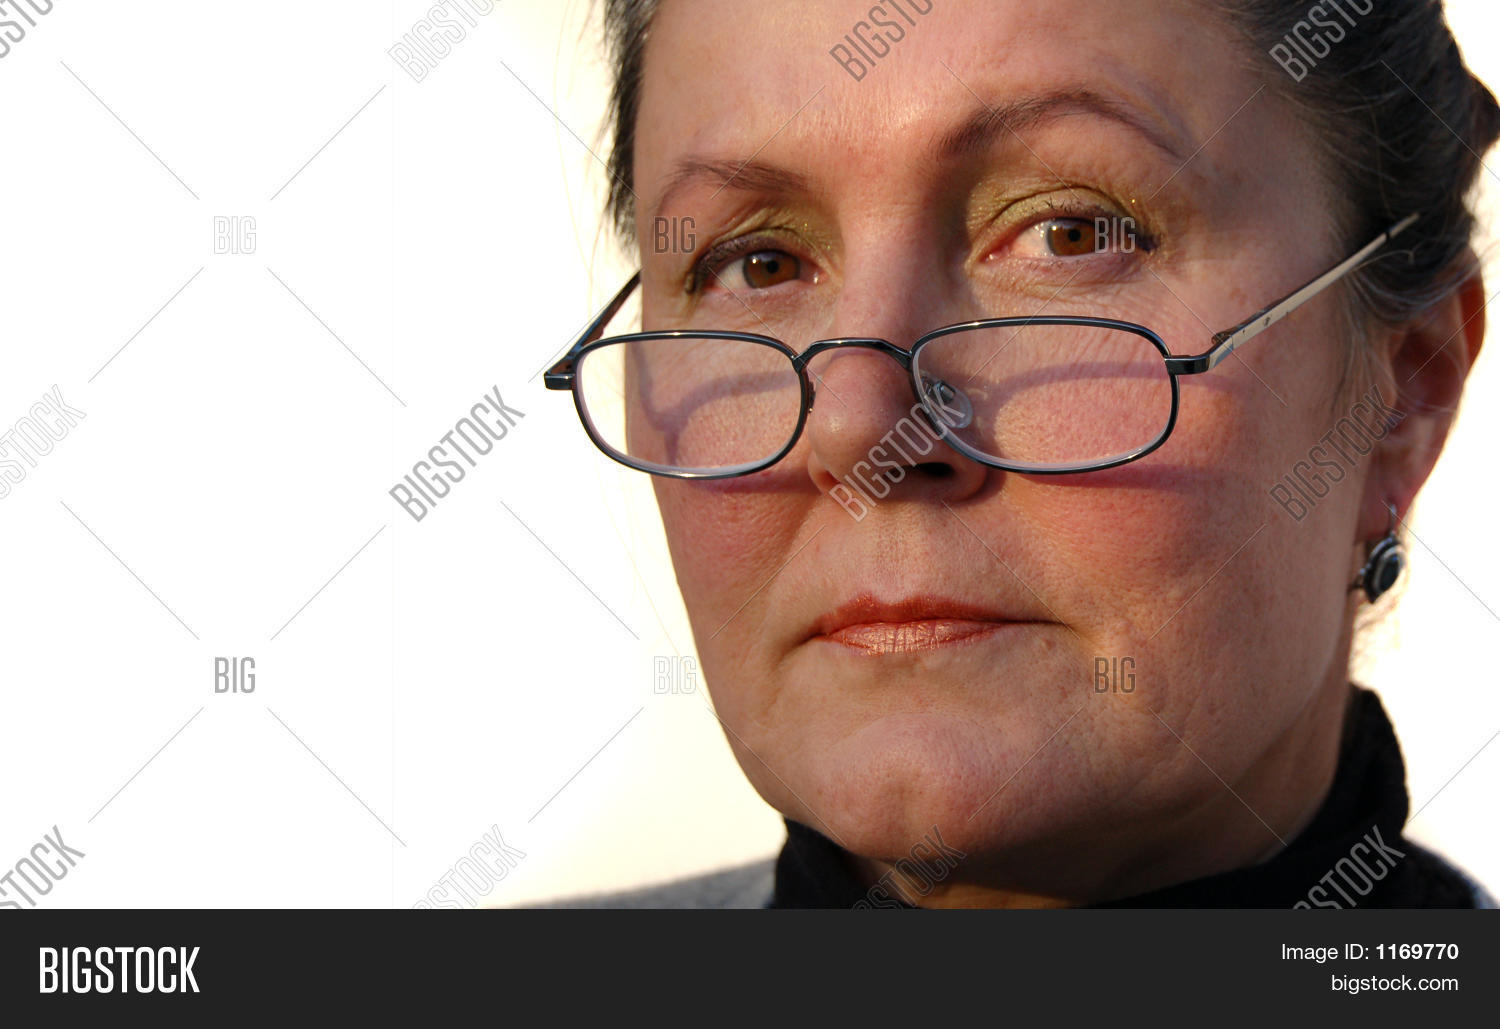 Stern Female Executive Image & Photo (Free Trial) | Bigstock